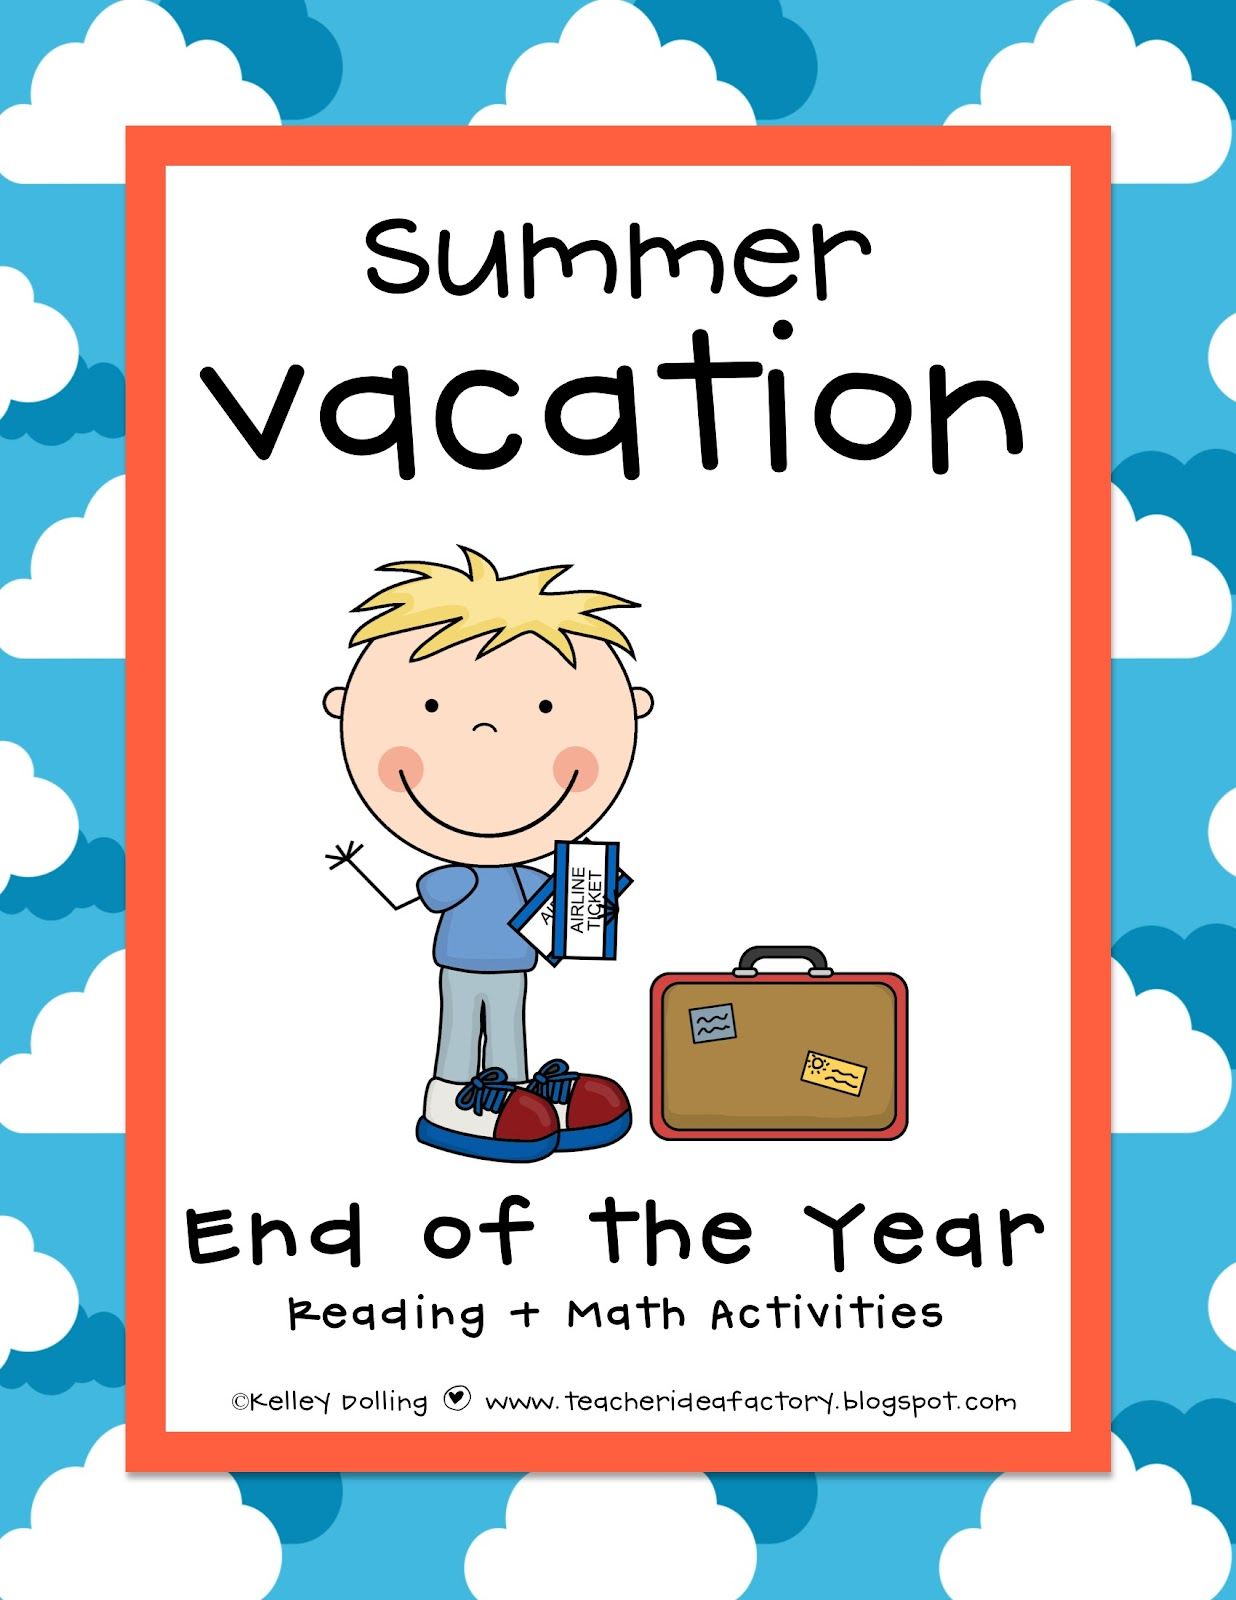 essay on summer vacation School closes down next week for the summer holidays i am eagerly awaiting the day i go home from school knowing that i will not be expected to enter my classroom for two long months.